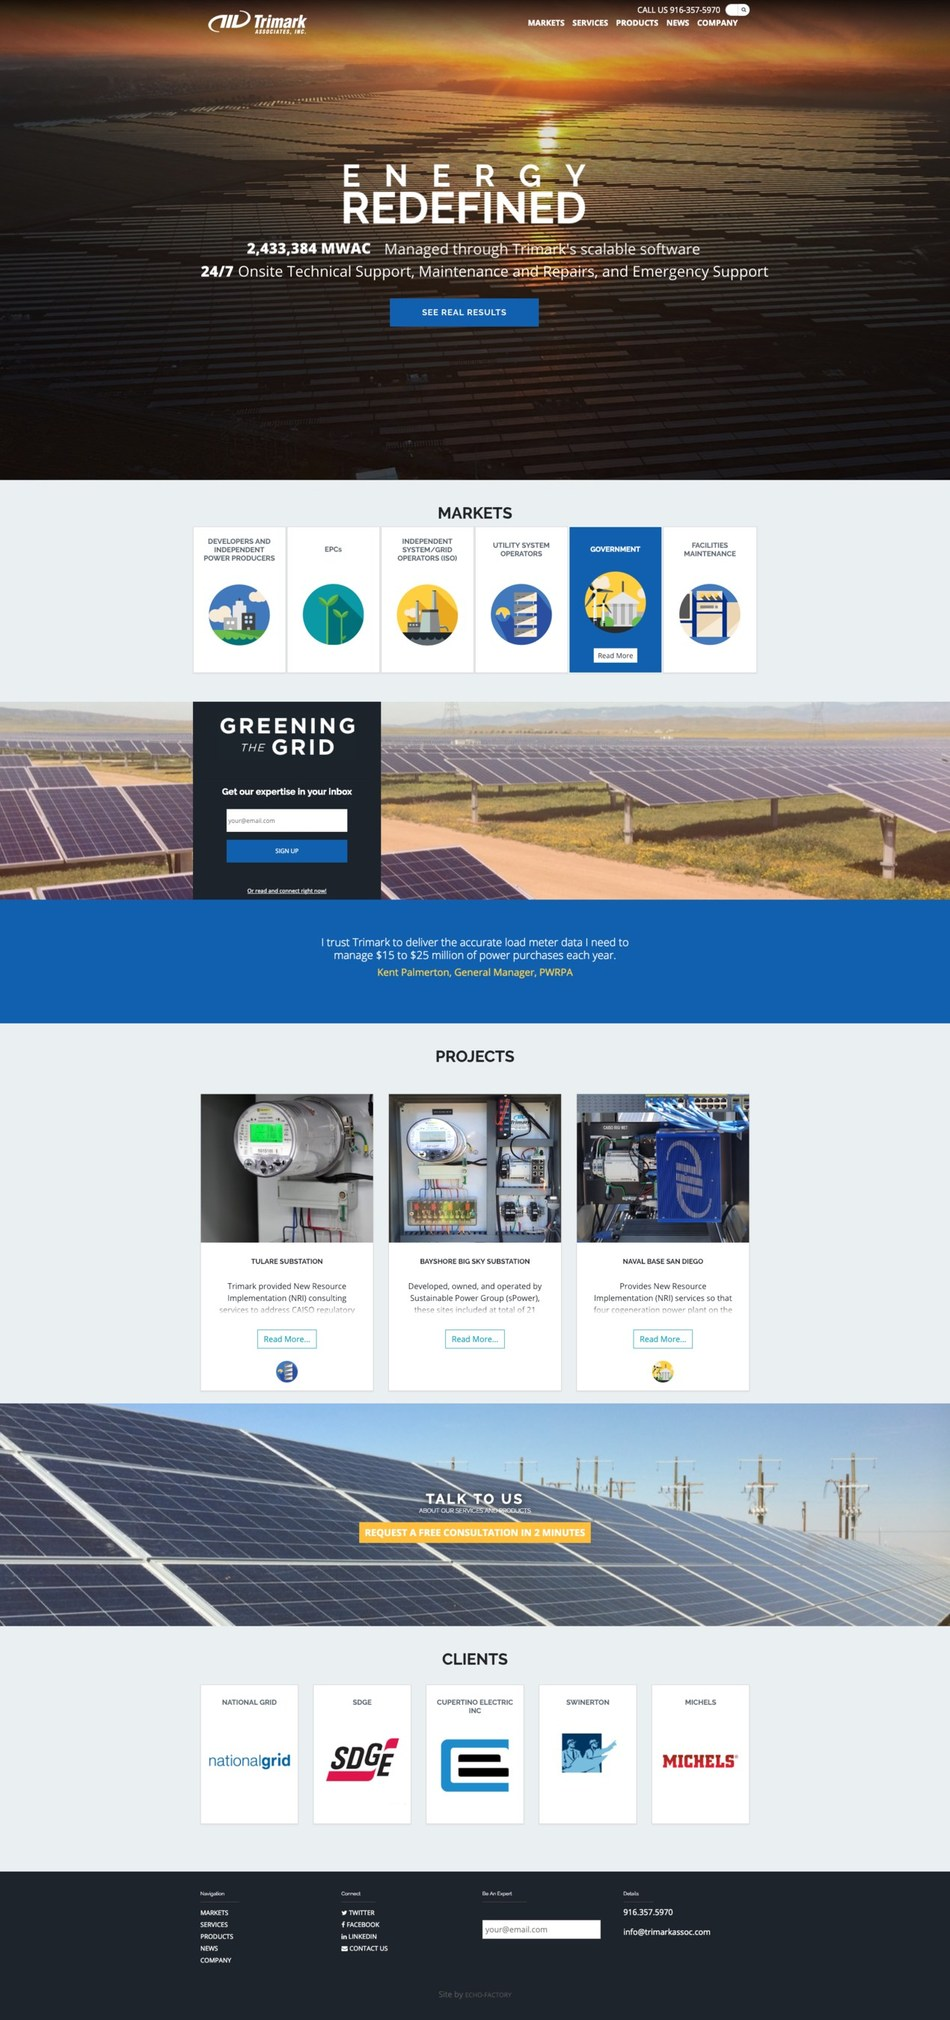 Trimark launches new website showcasing energy management solutions for utility-scale PV power producers